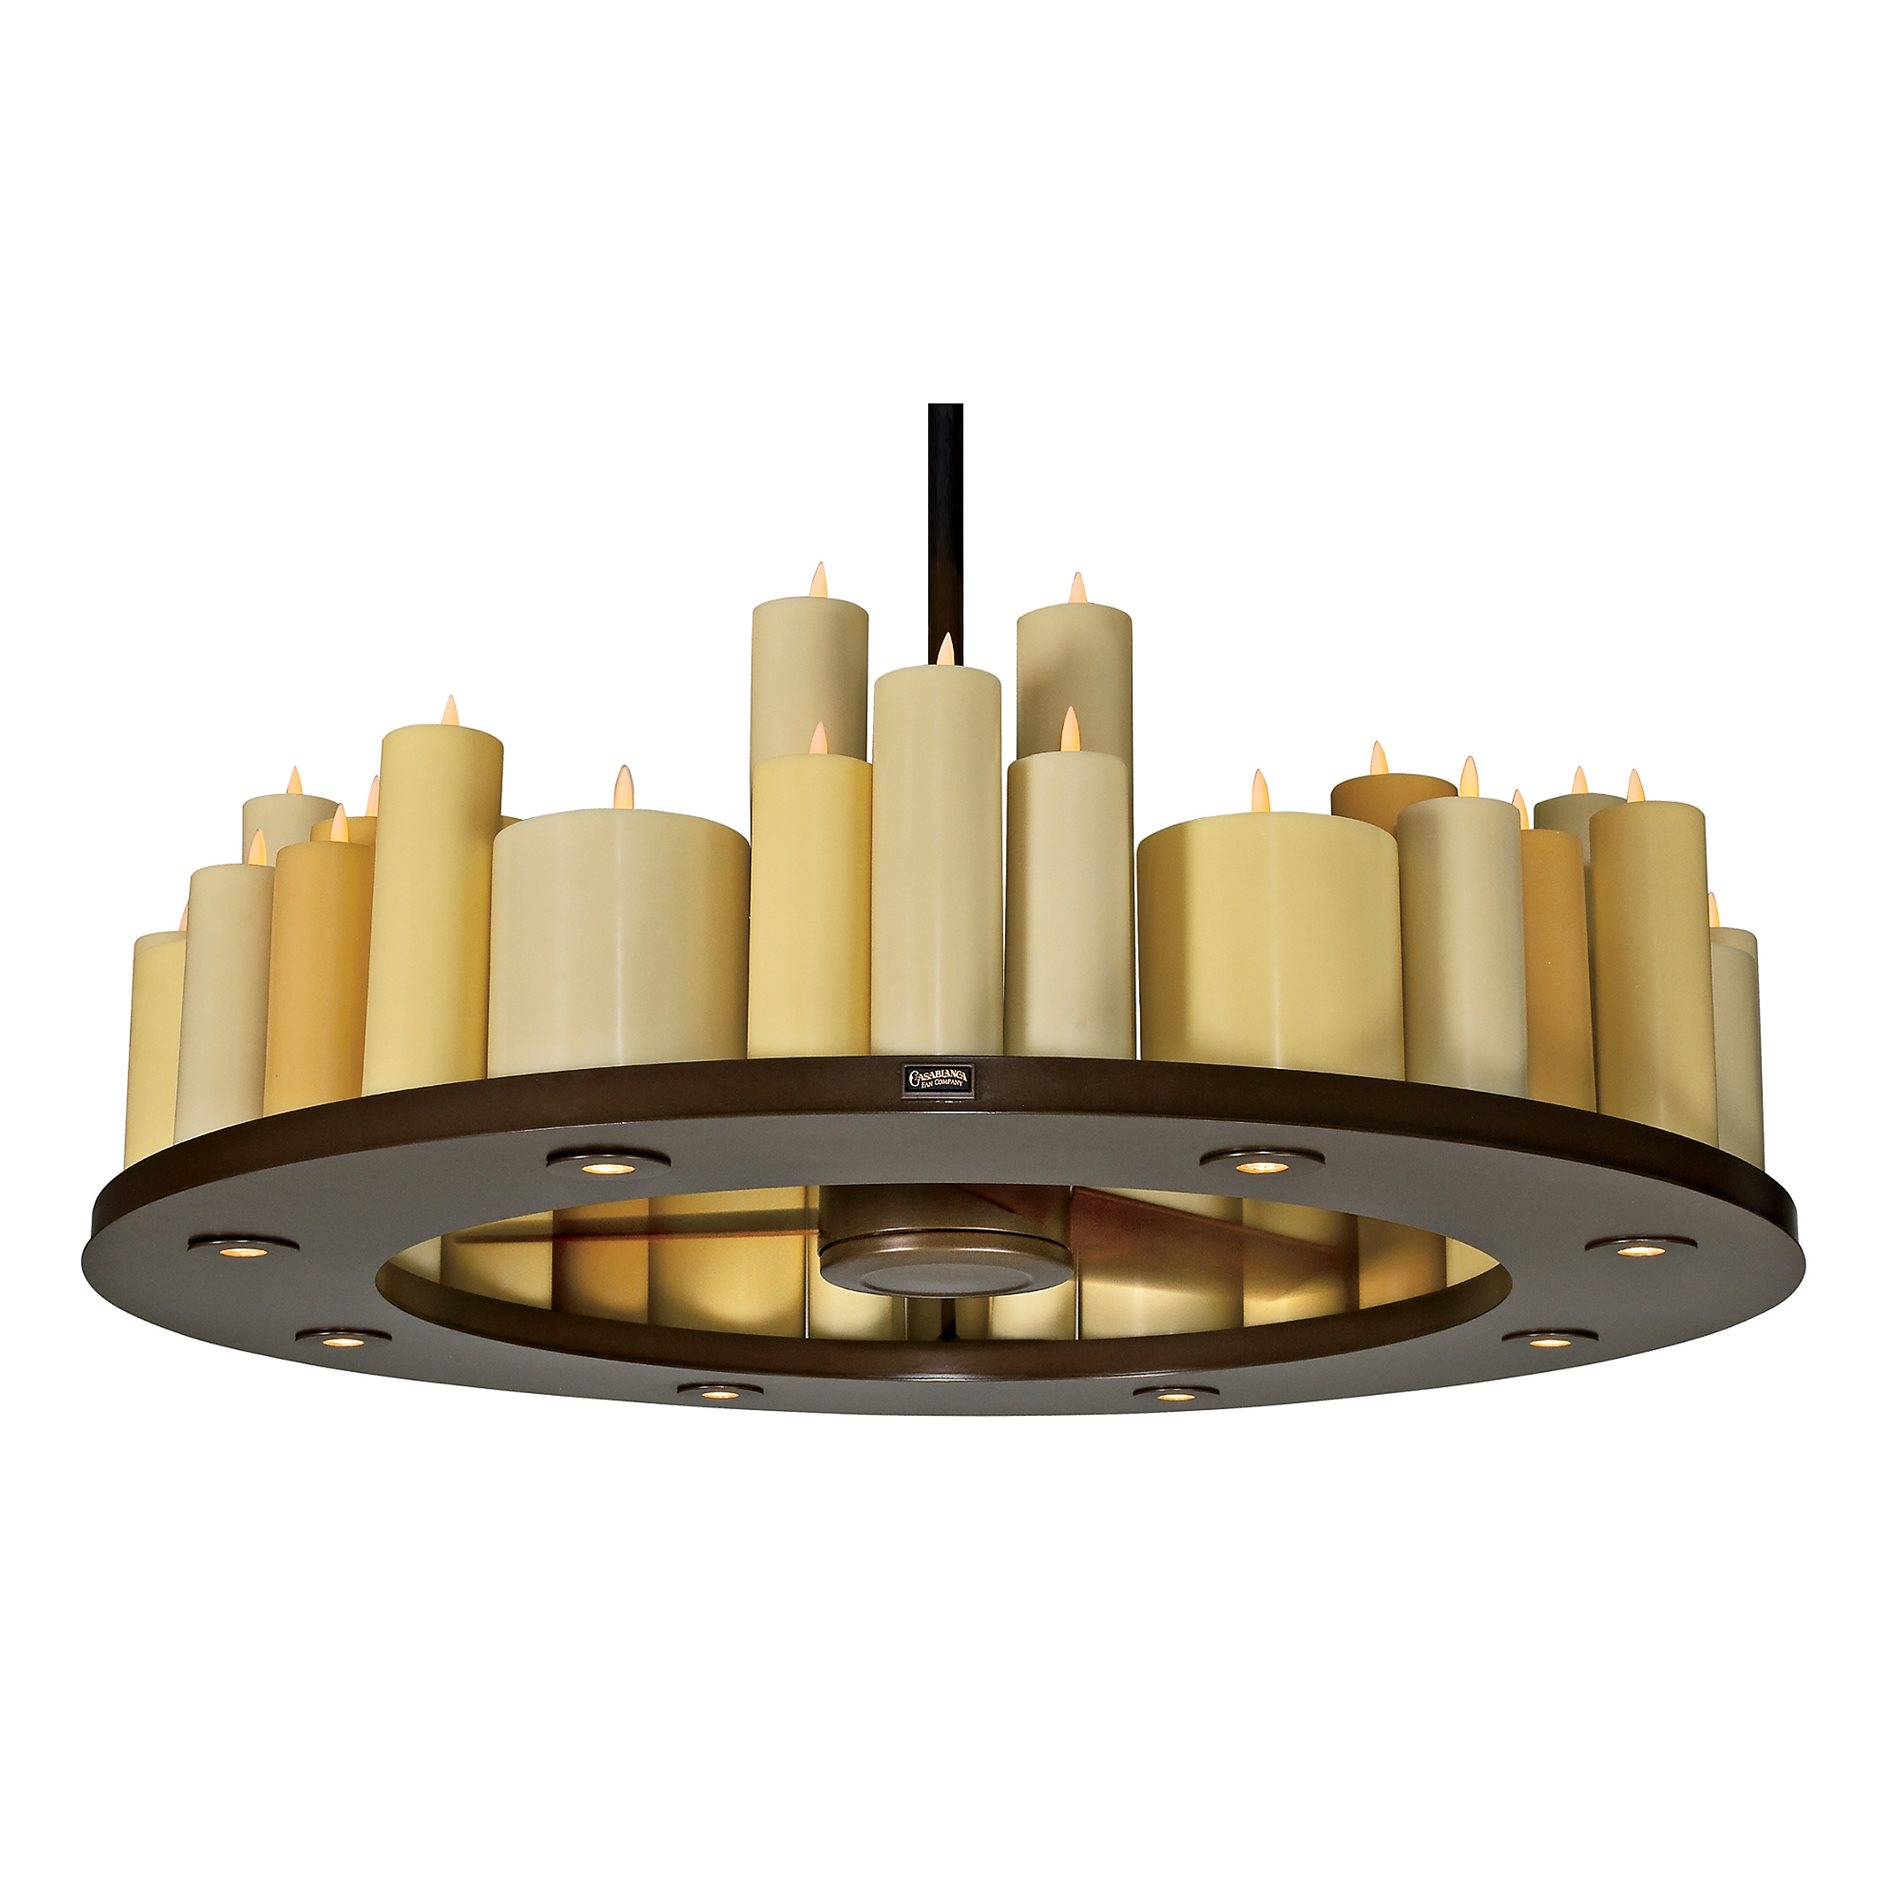 casablanca fans c16g73l candelier ii transitional candle chandelier ceiling fan casa c16g73l